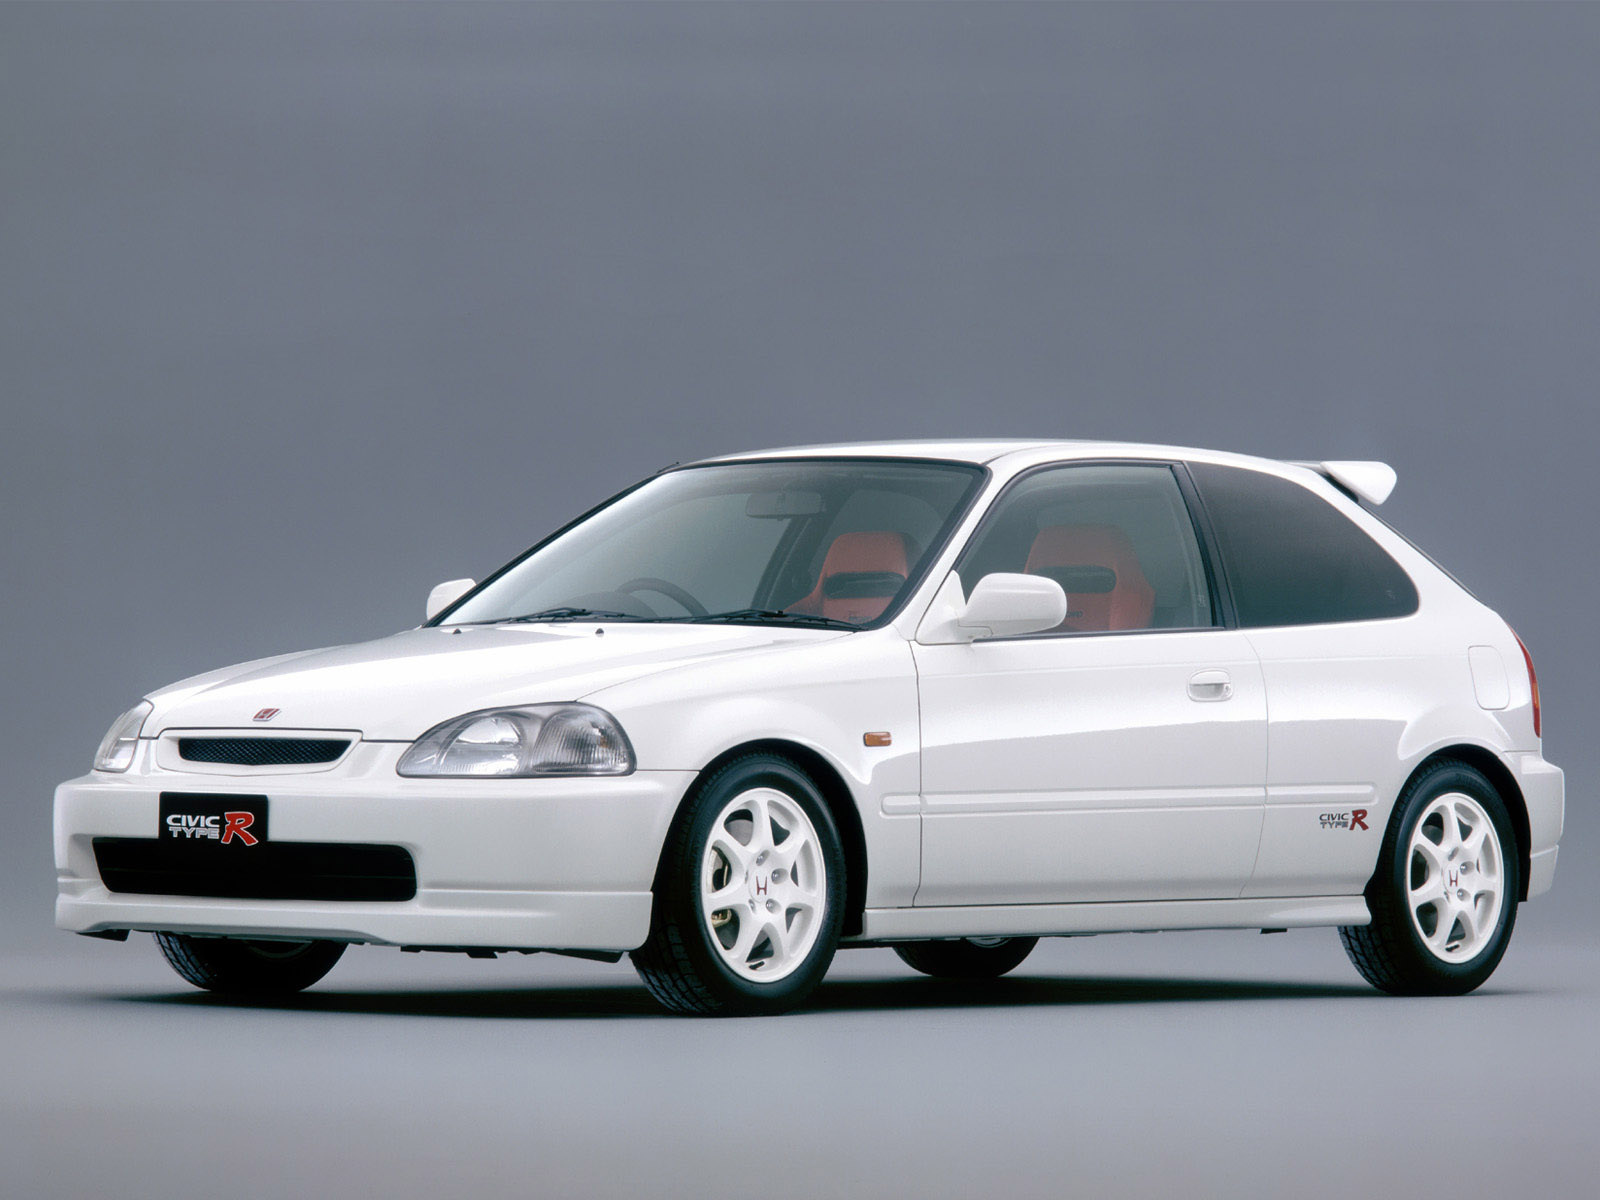 1997 Honda Civic #19